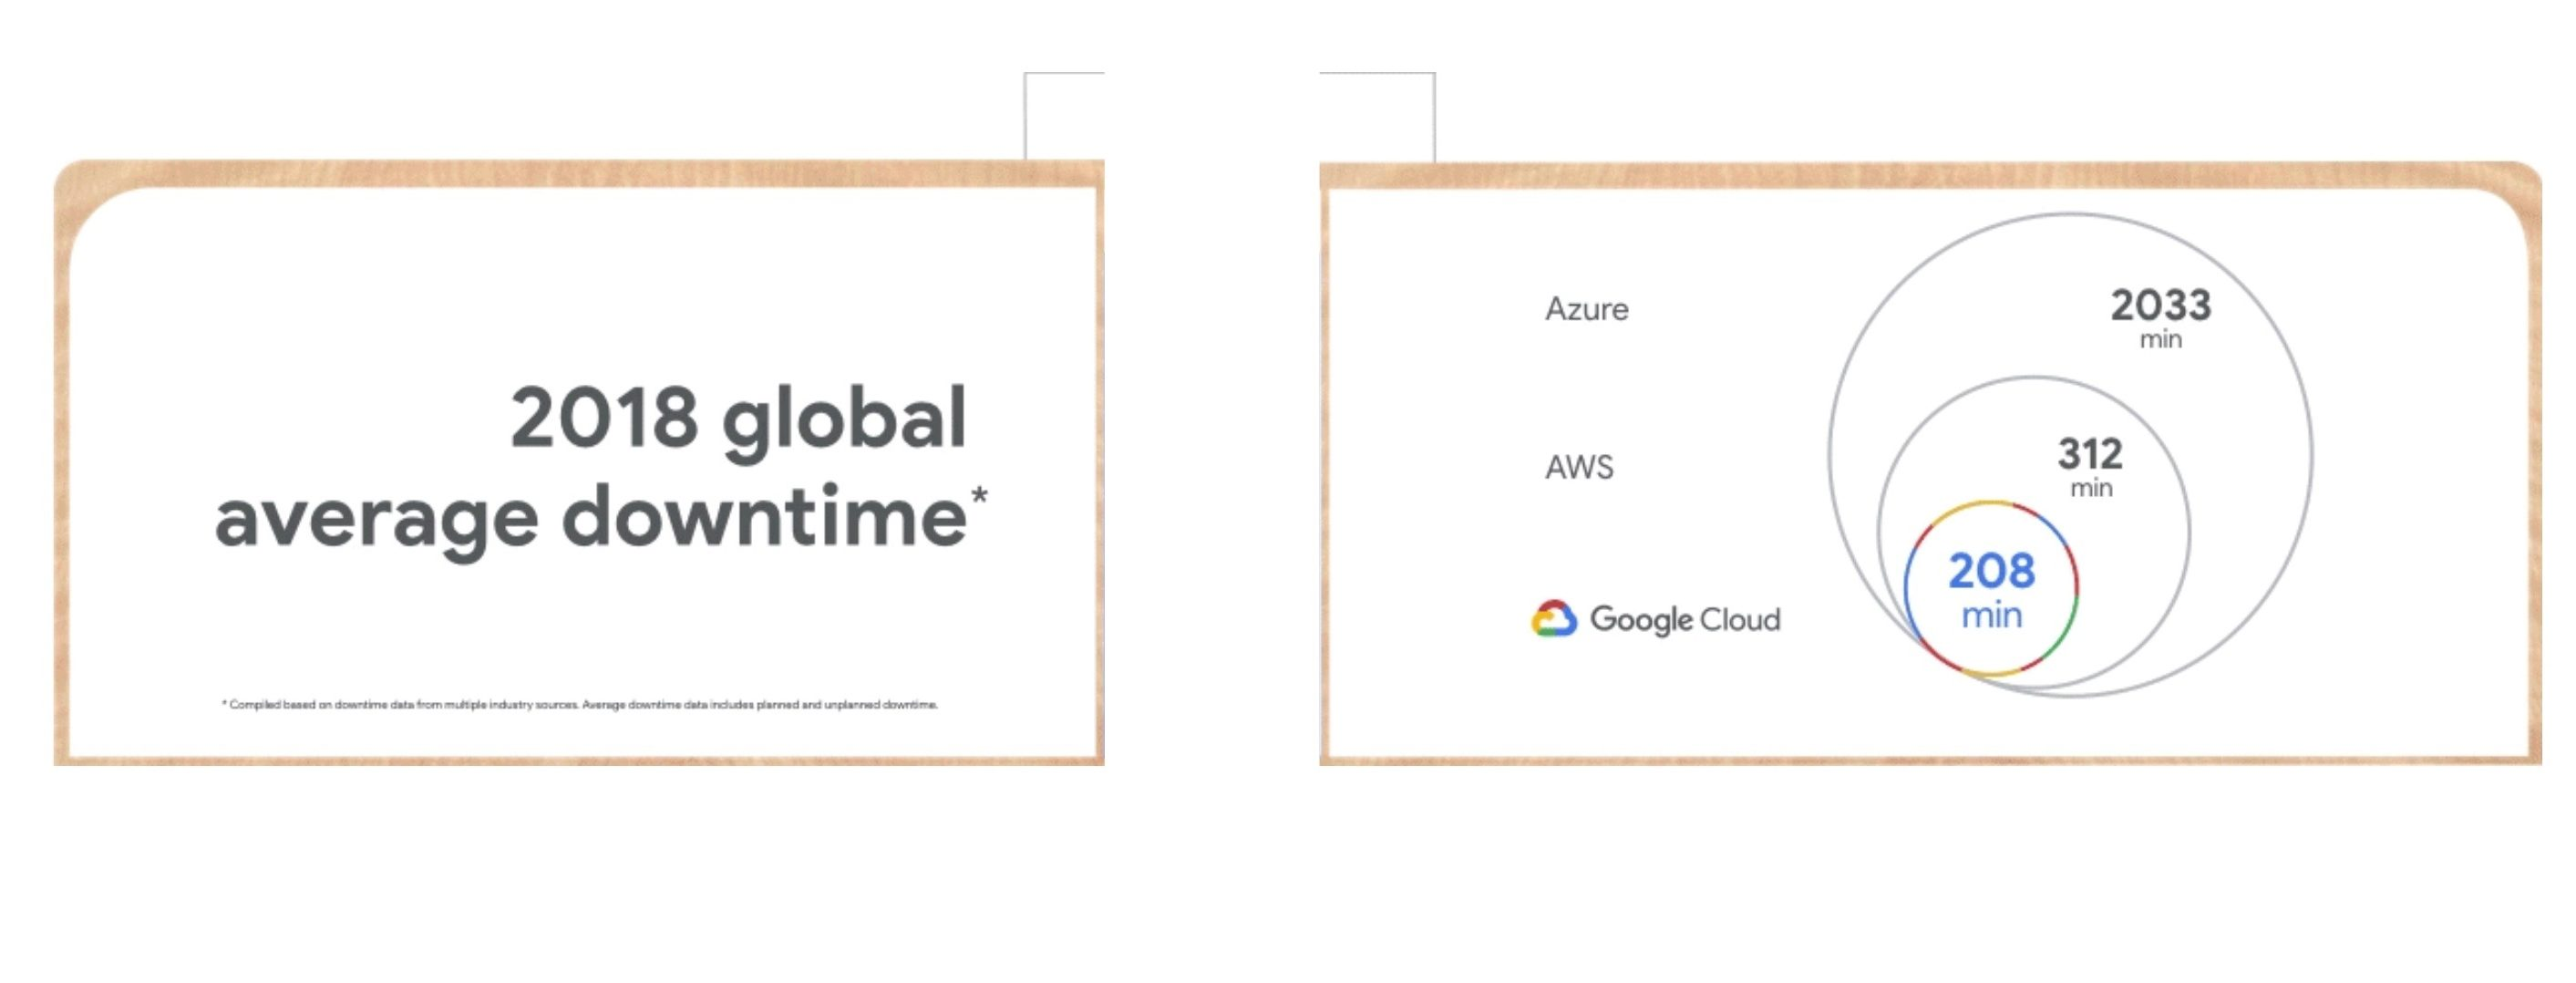 Does Google really run the most reliable cloud service? Even